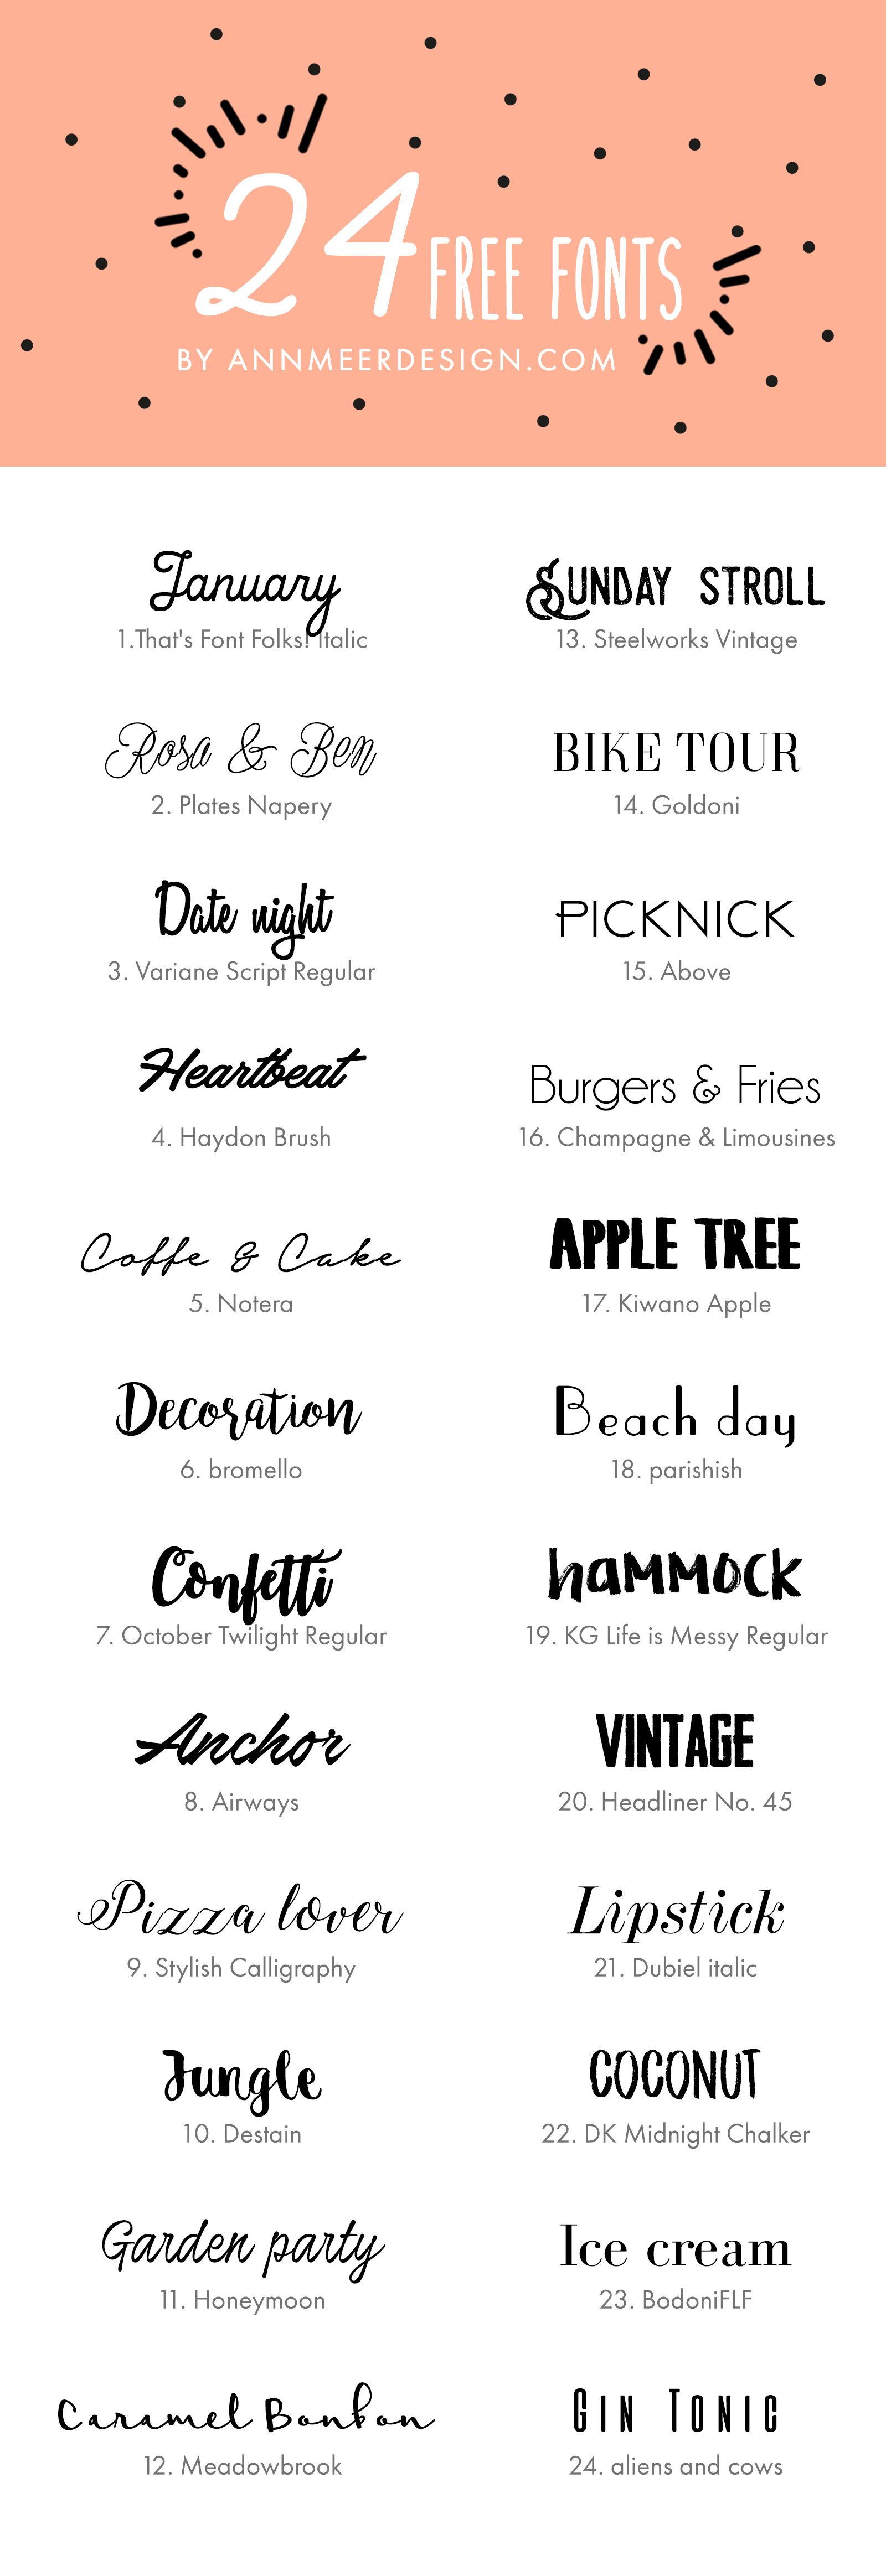 Calligraphy Tattoo Pinterest 24 Free Fonts By Annmeerdesign Fonts Pinterest Fonts